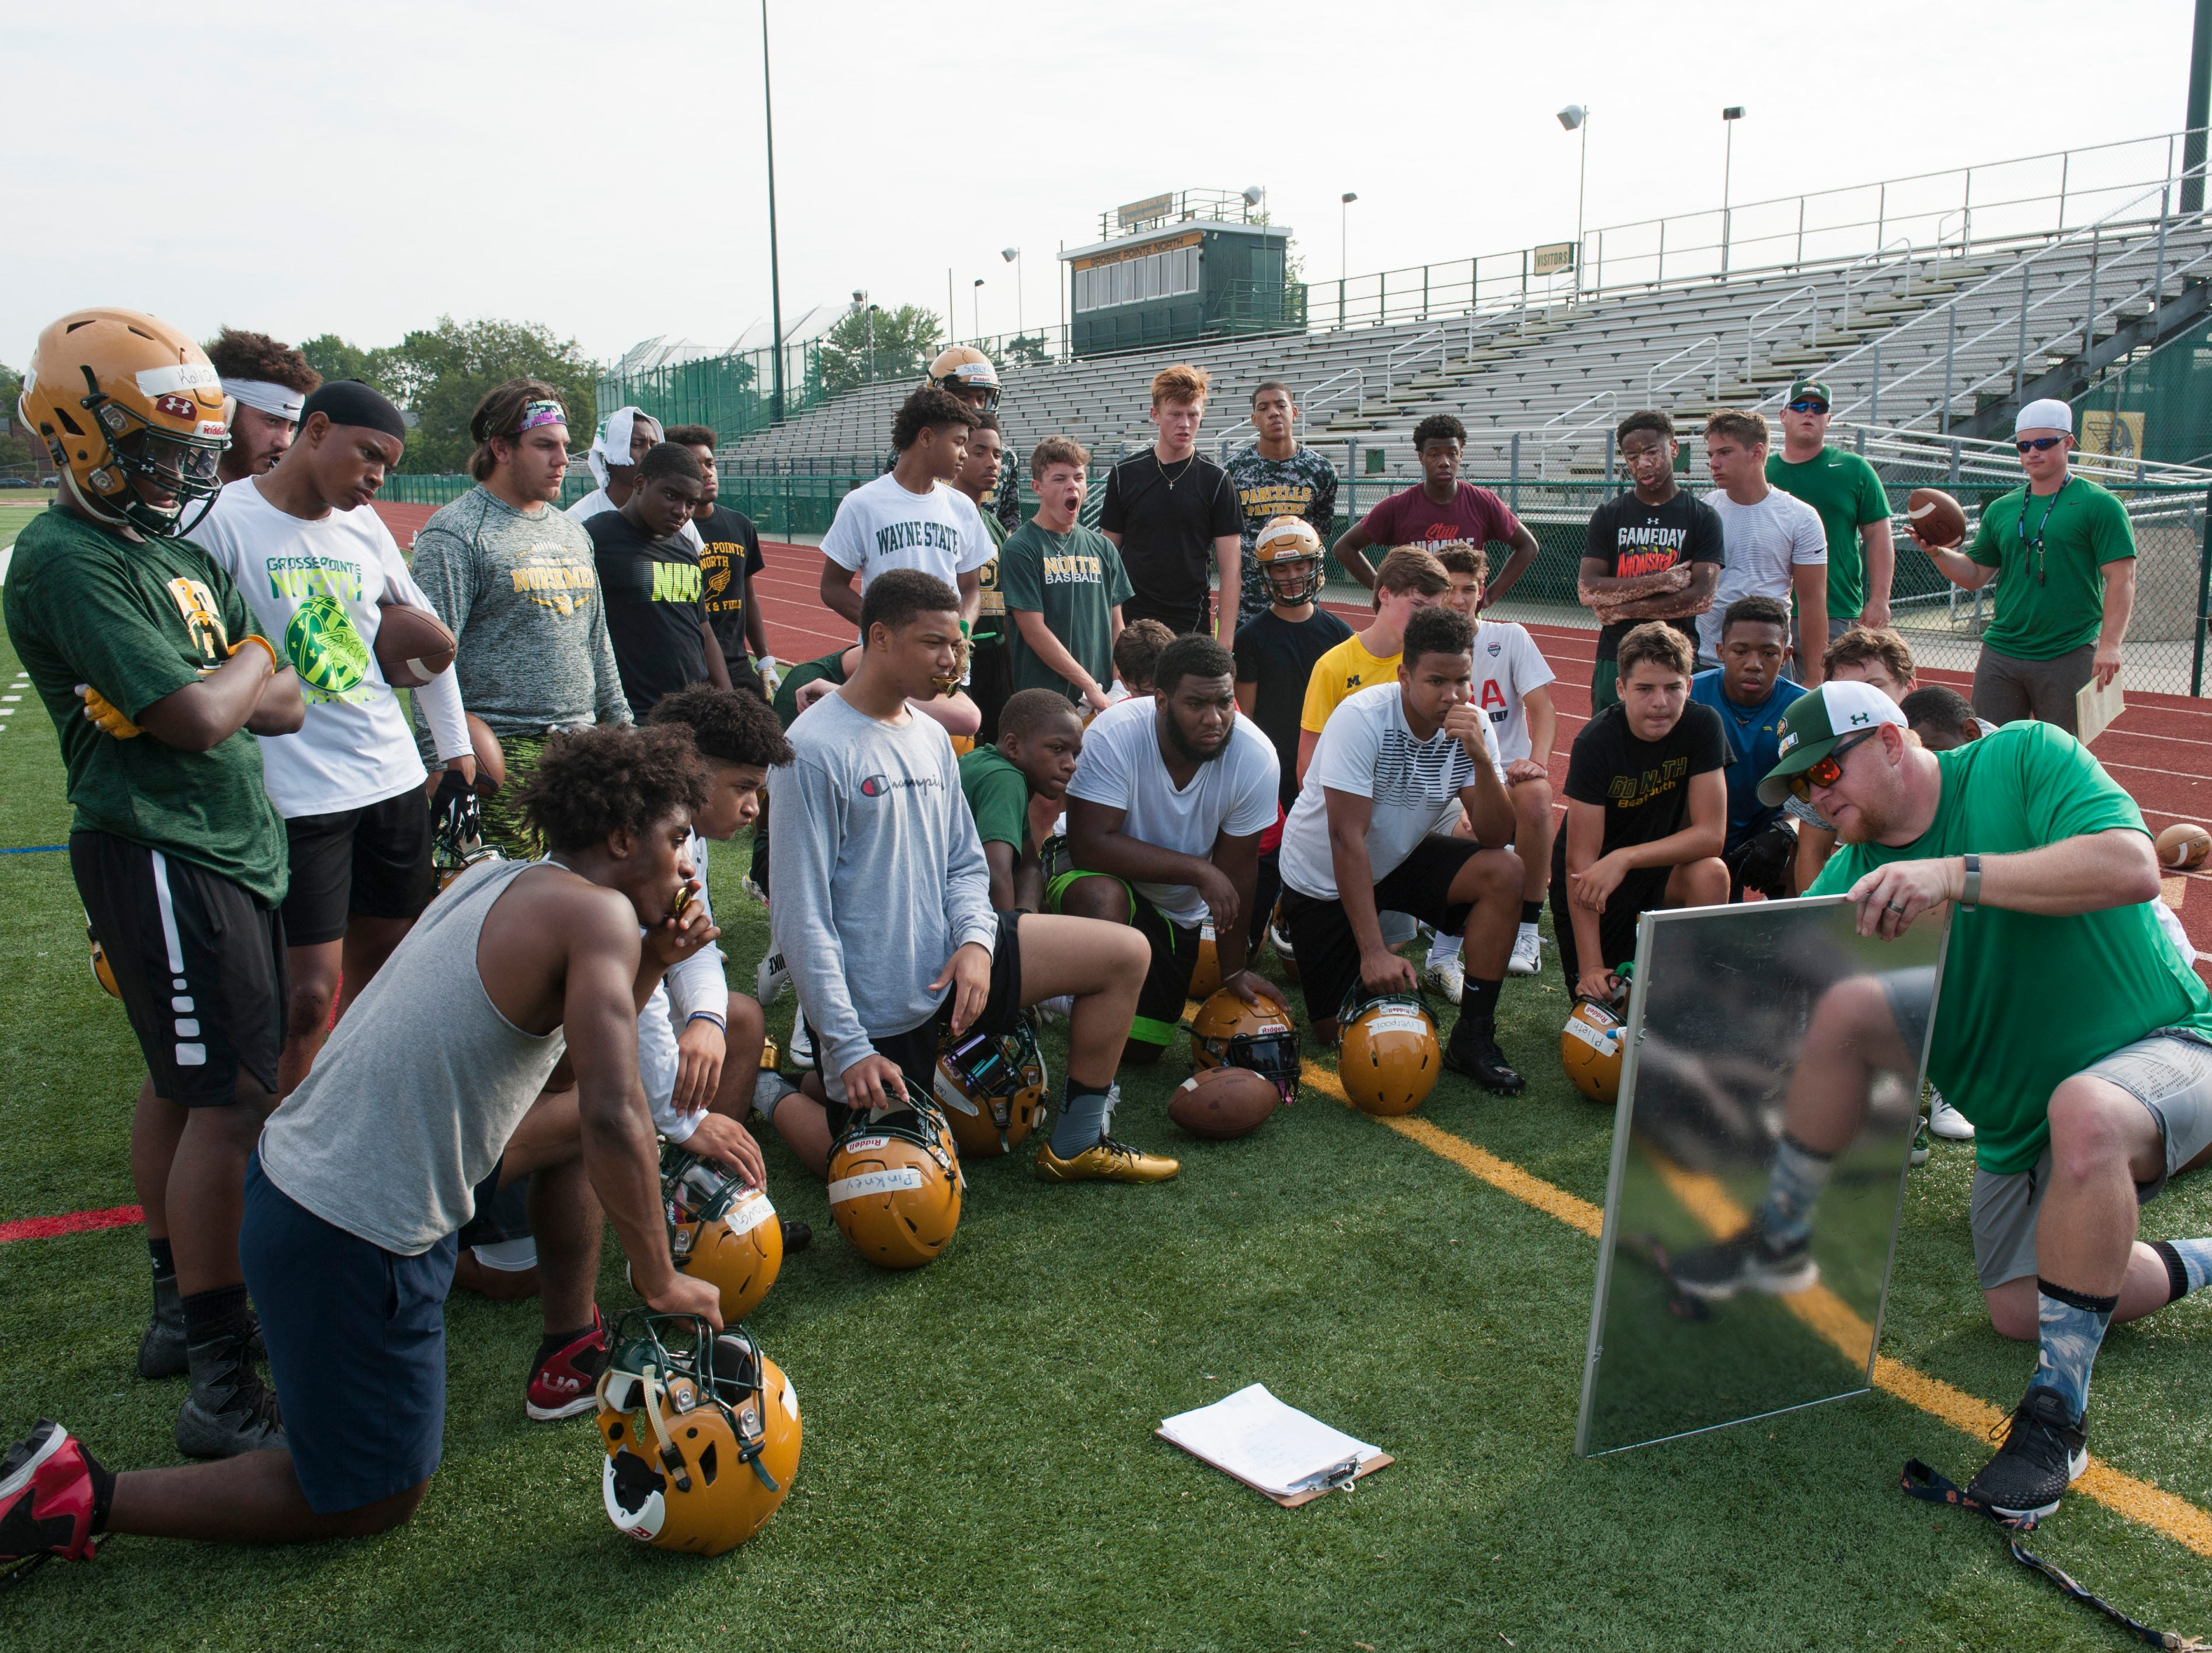 New assistant head coach/offensive coordinator Dennis Pascoe draws up some offensive plays on a white board with the Grosse Pointe North football players gathered around him at their first practice of the season.